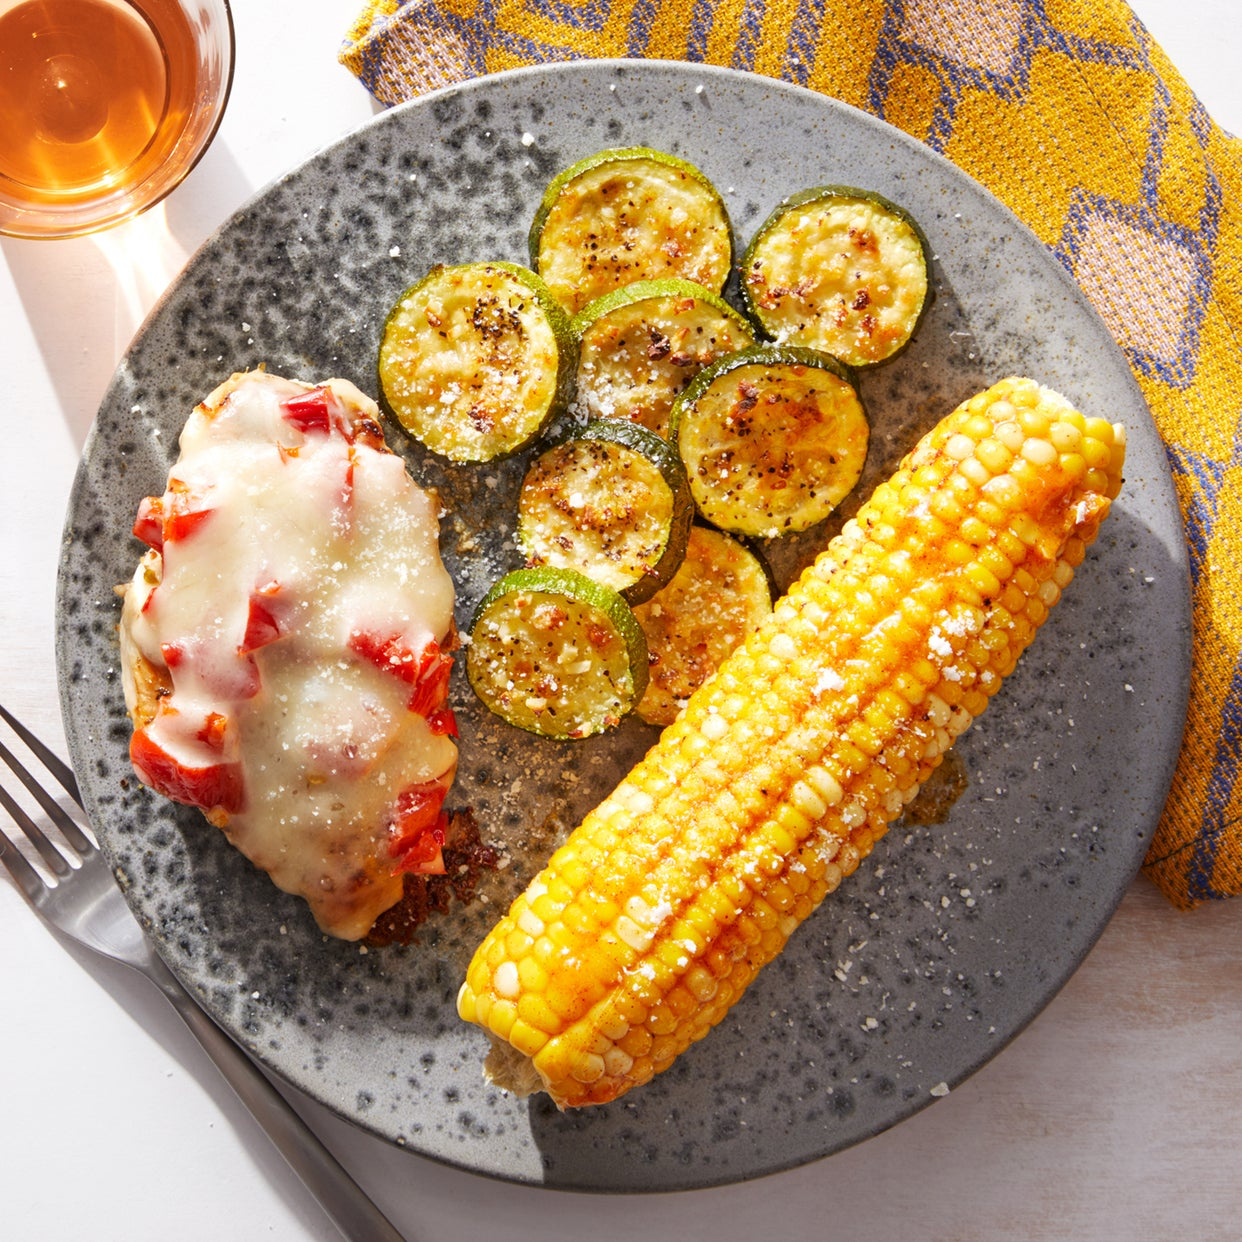 Asiago-Smothered Chicken with Roasted Zucchini & Smoky Corn